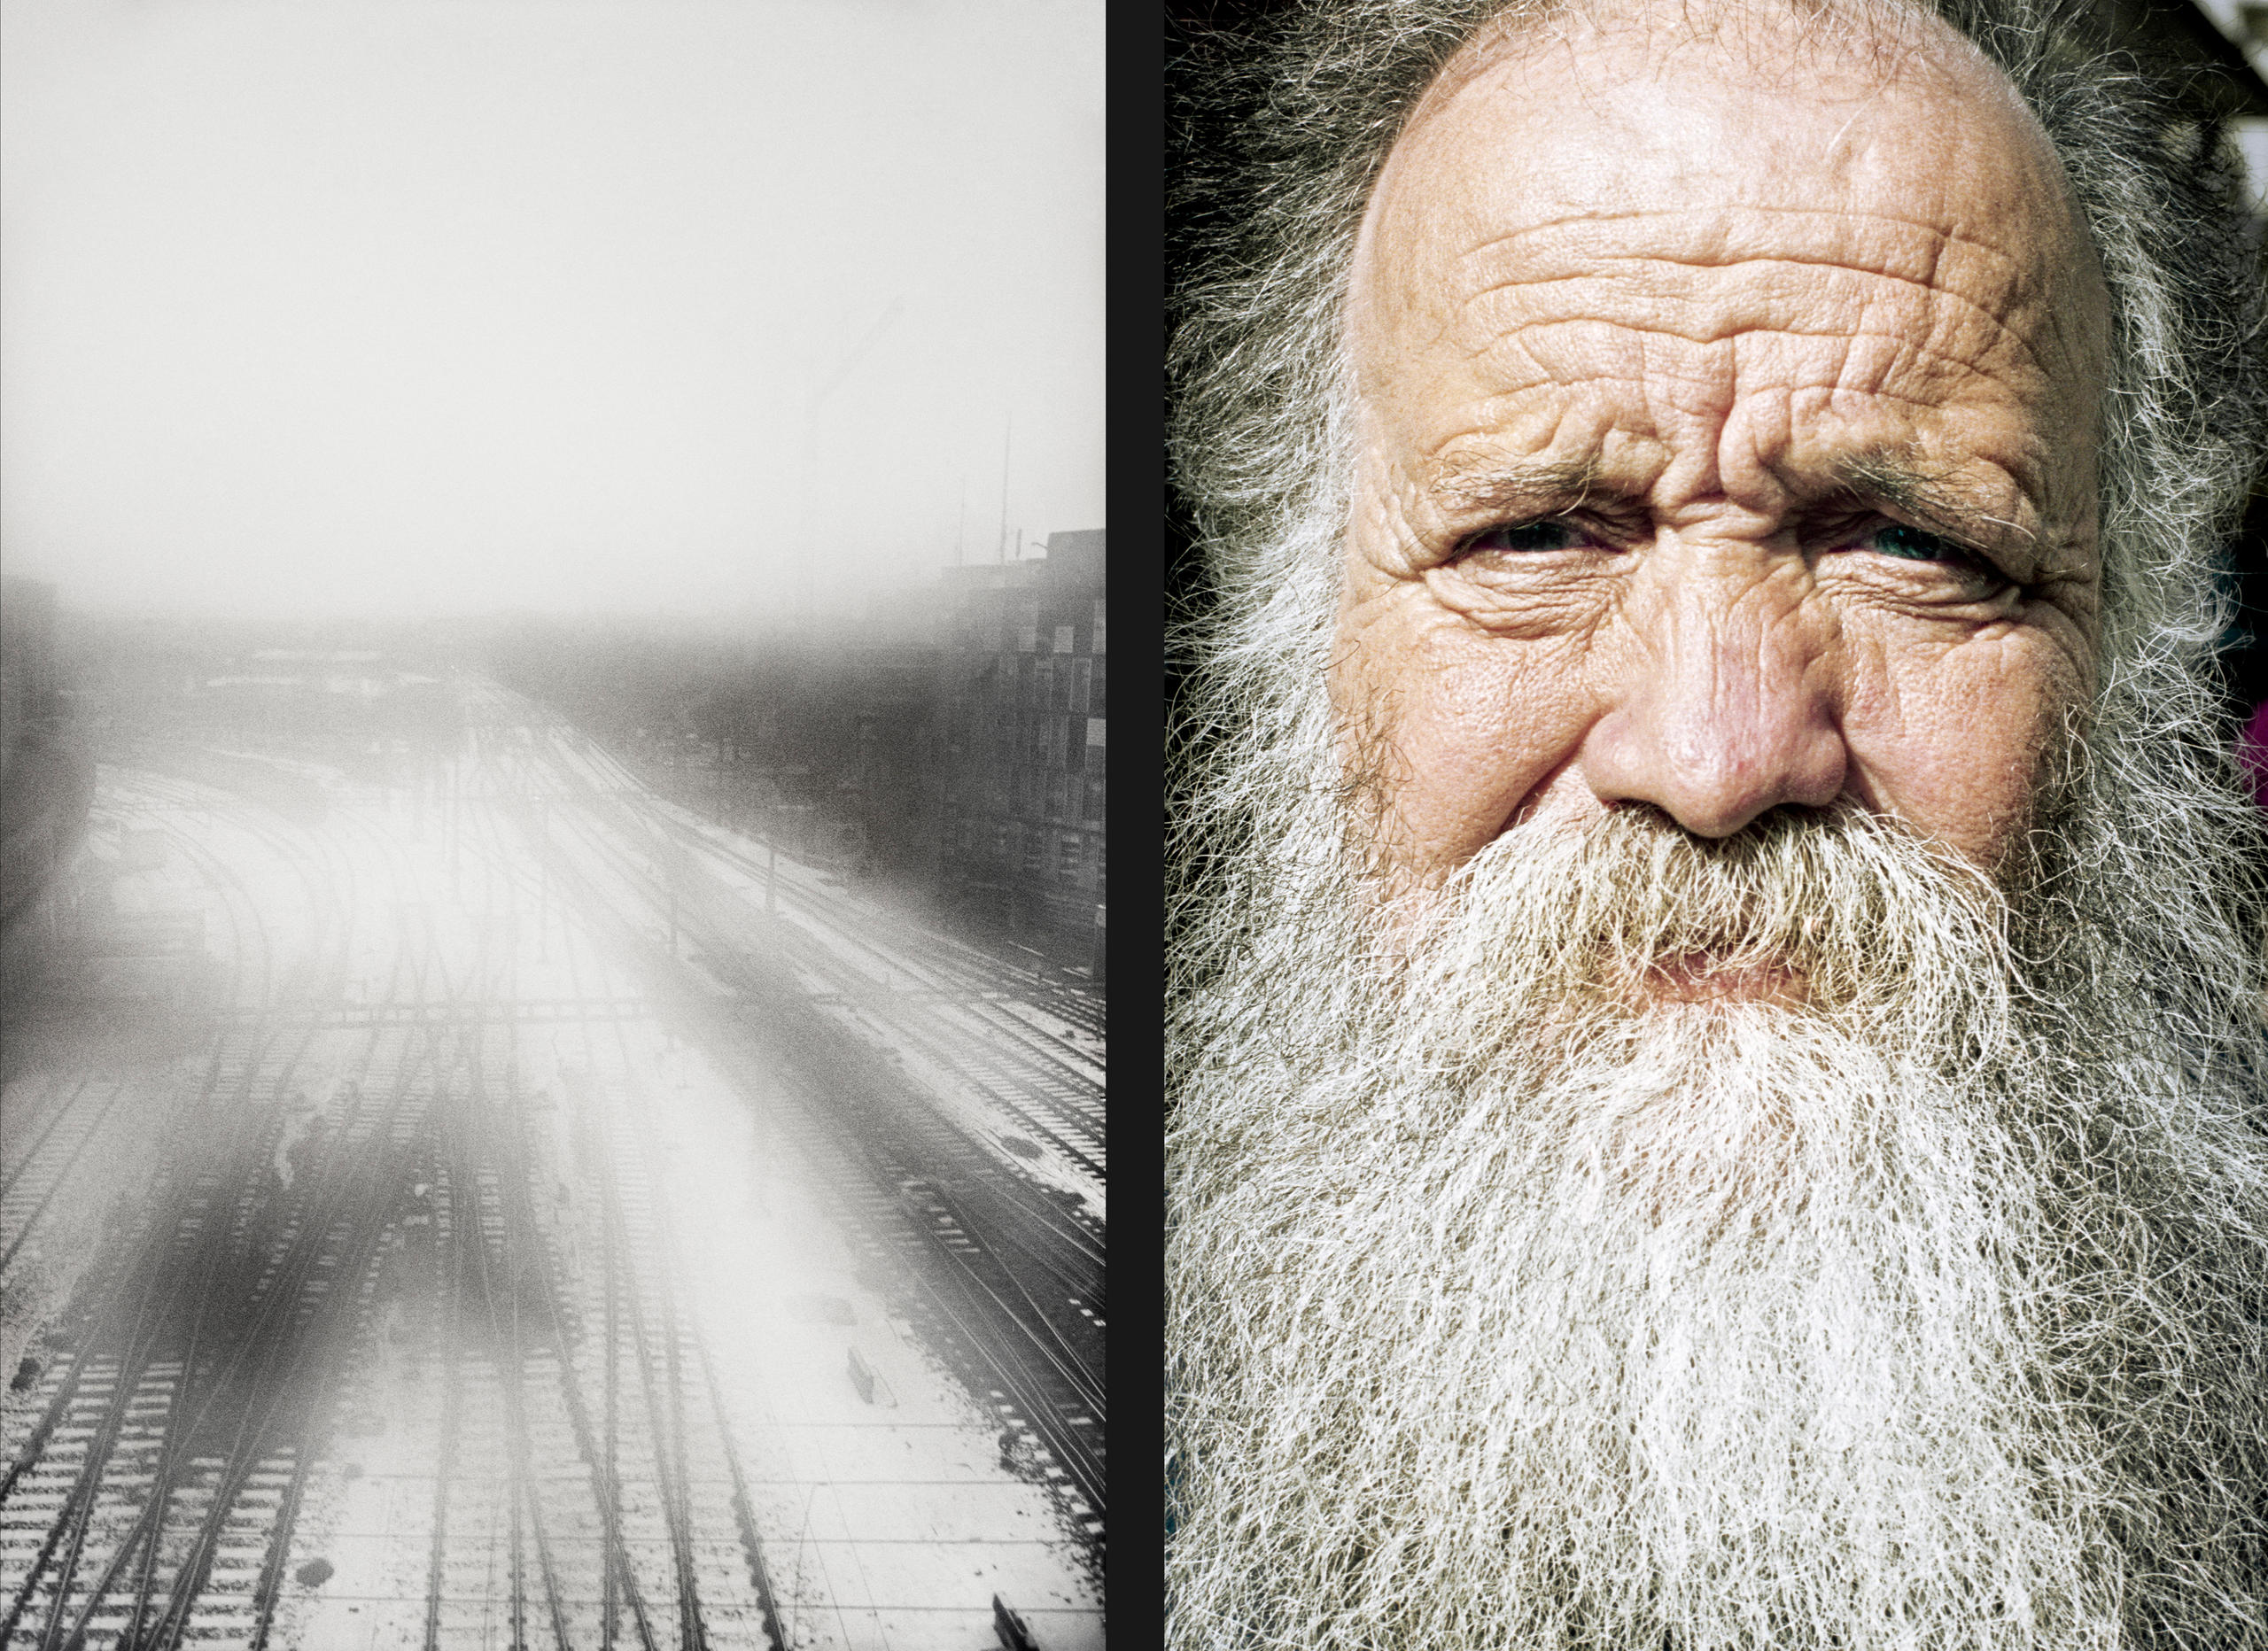 Rail tracks in winter / portrait of an elderly man